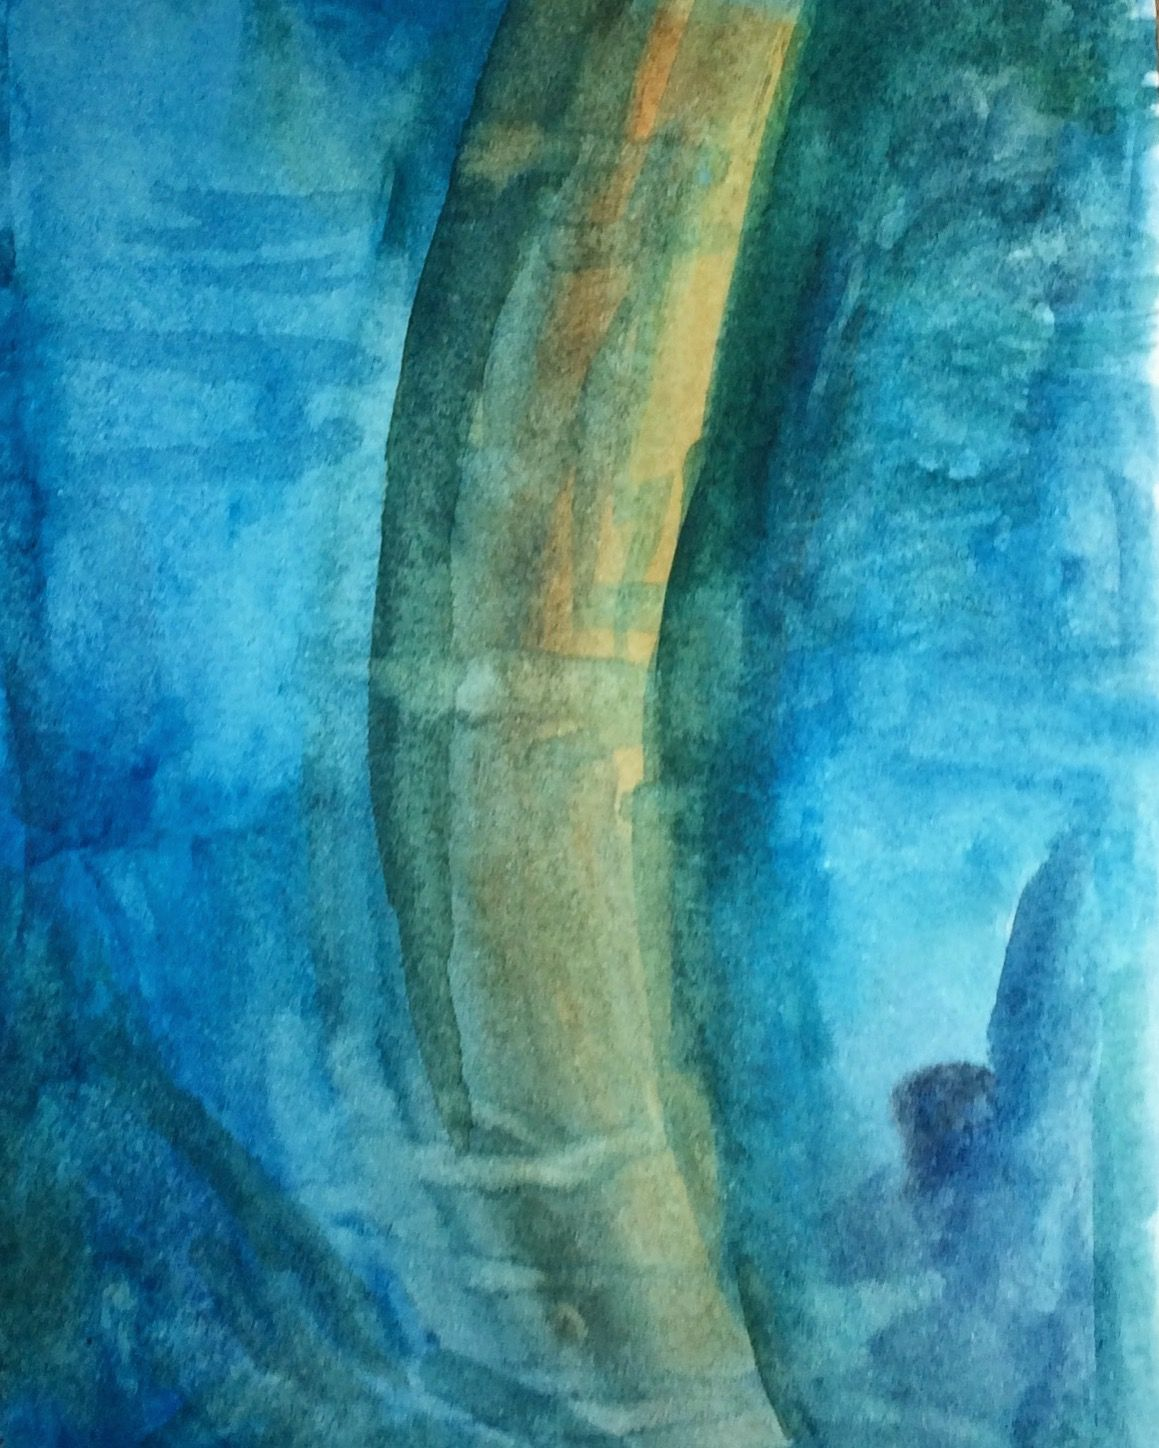 Day 49 Tree Trunk Reflection In Pool Watercolor Sketch Book